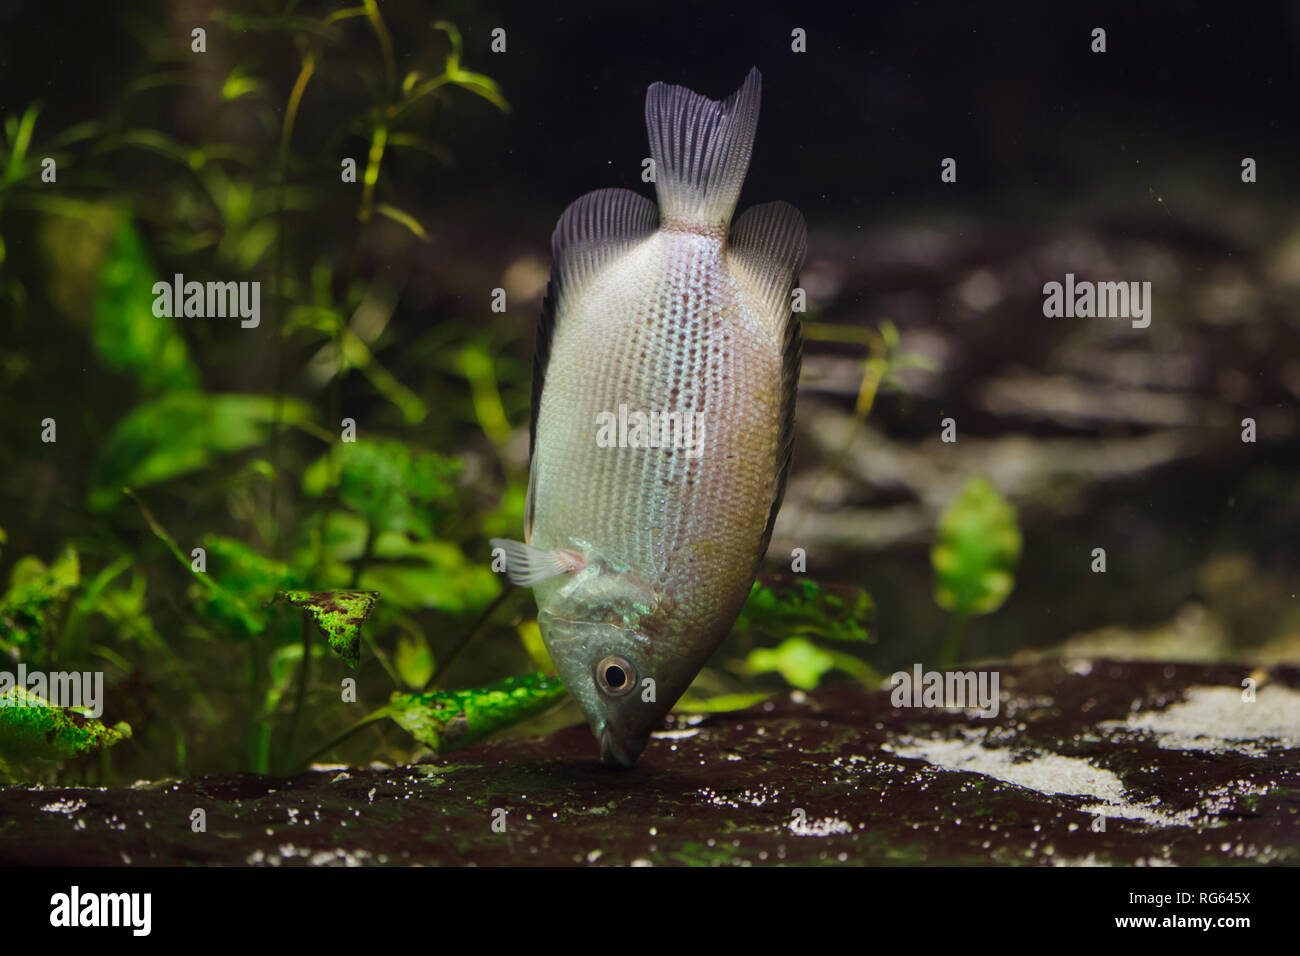 Kissing gourami (Helostoma temminckii), also known as the kissing fish. Stock Photo